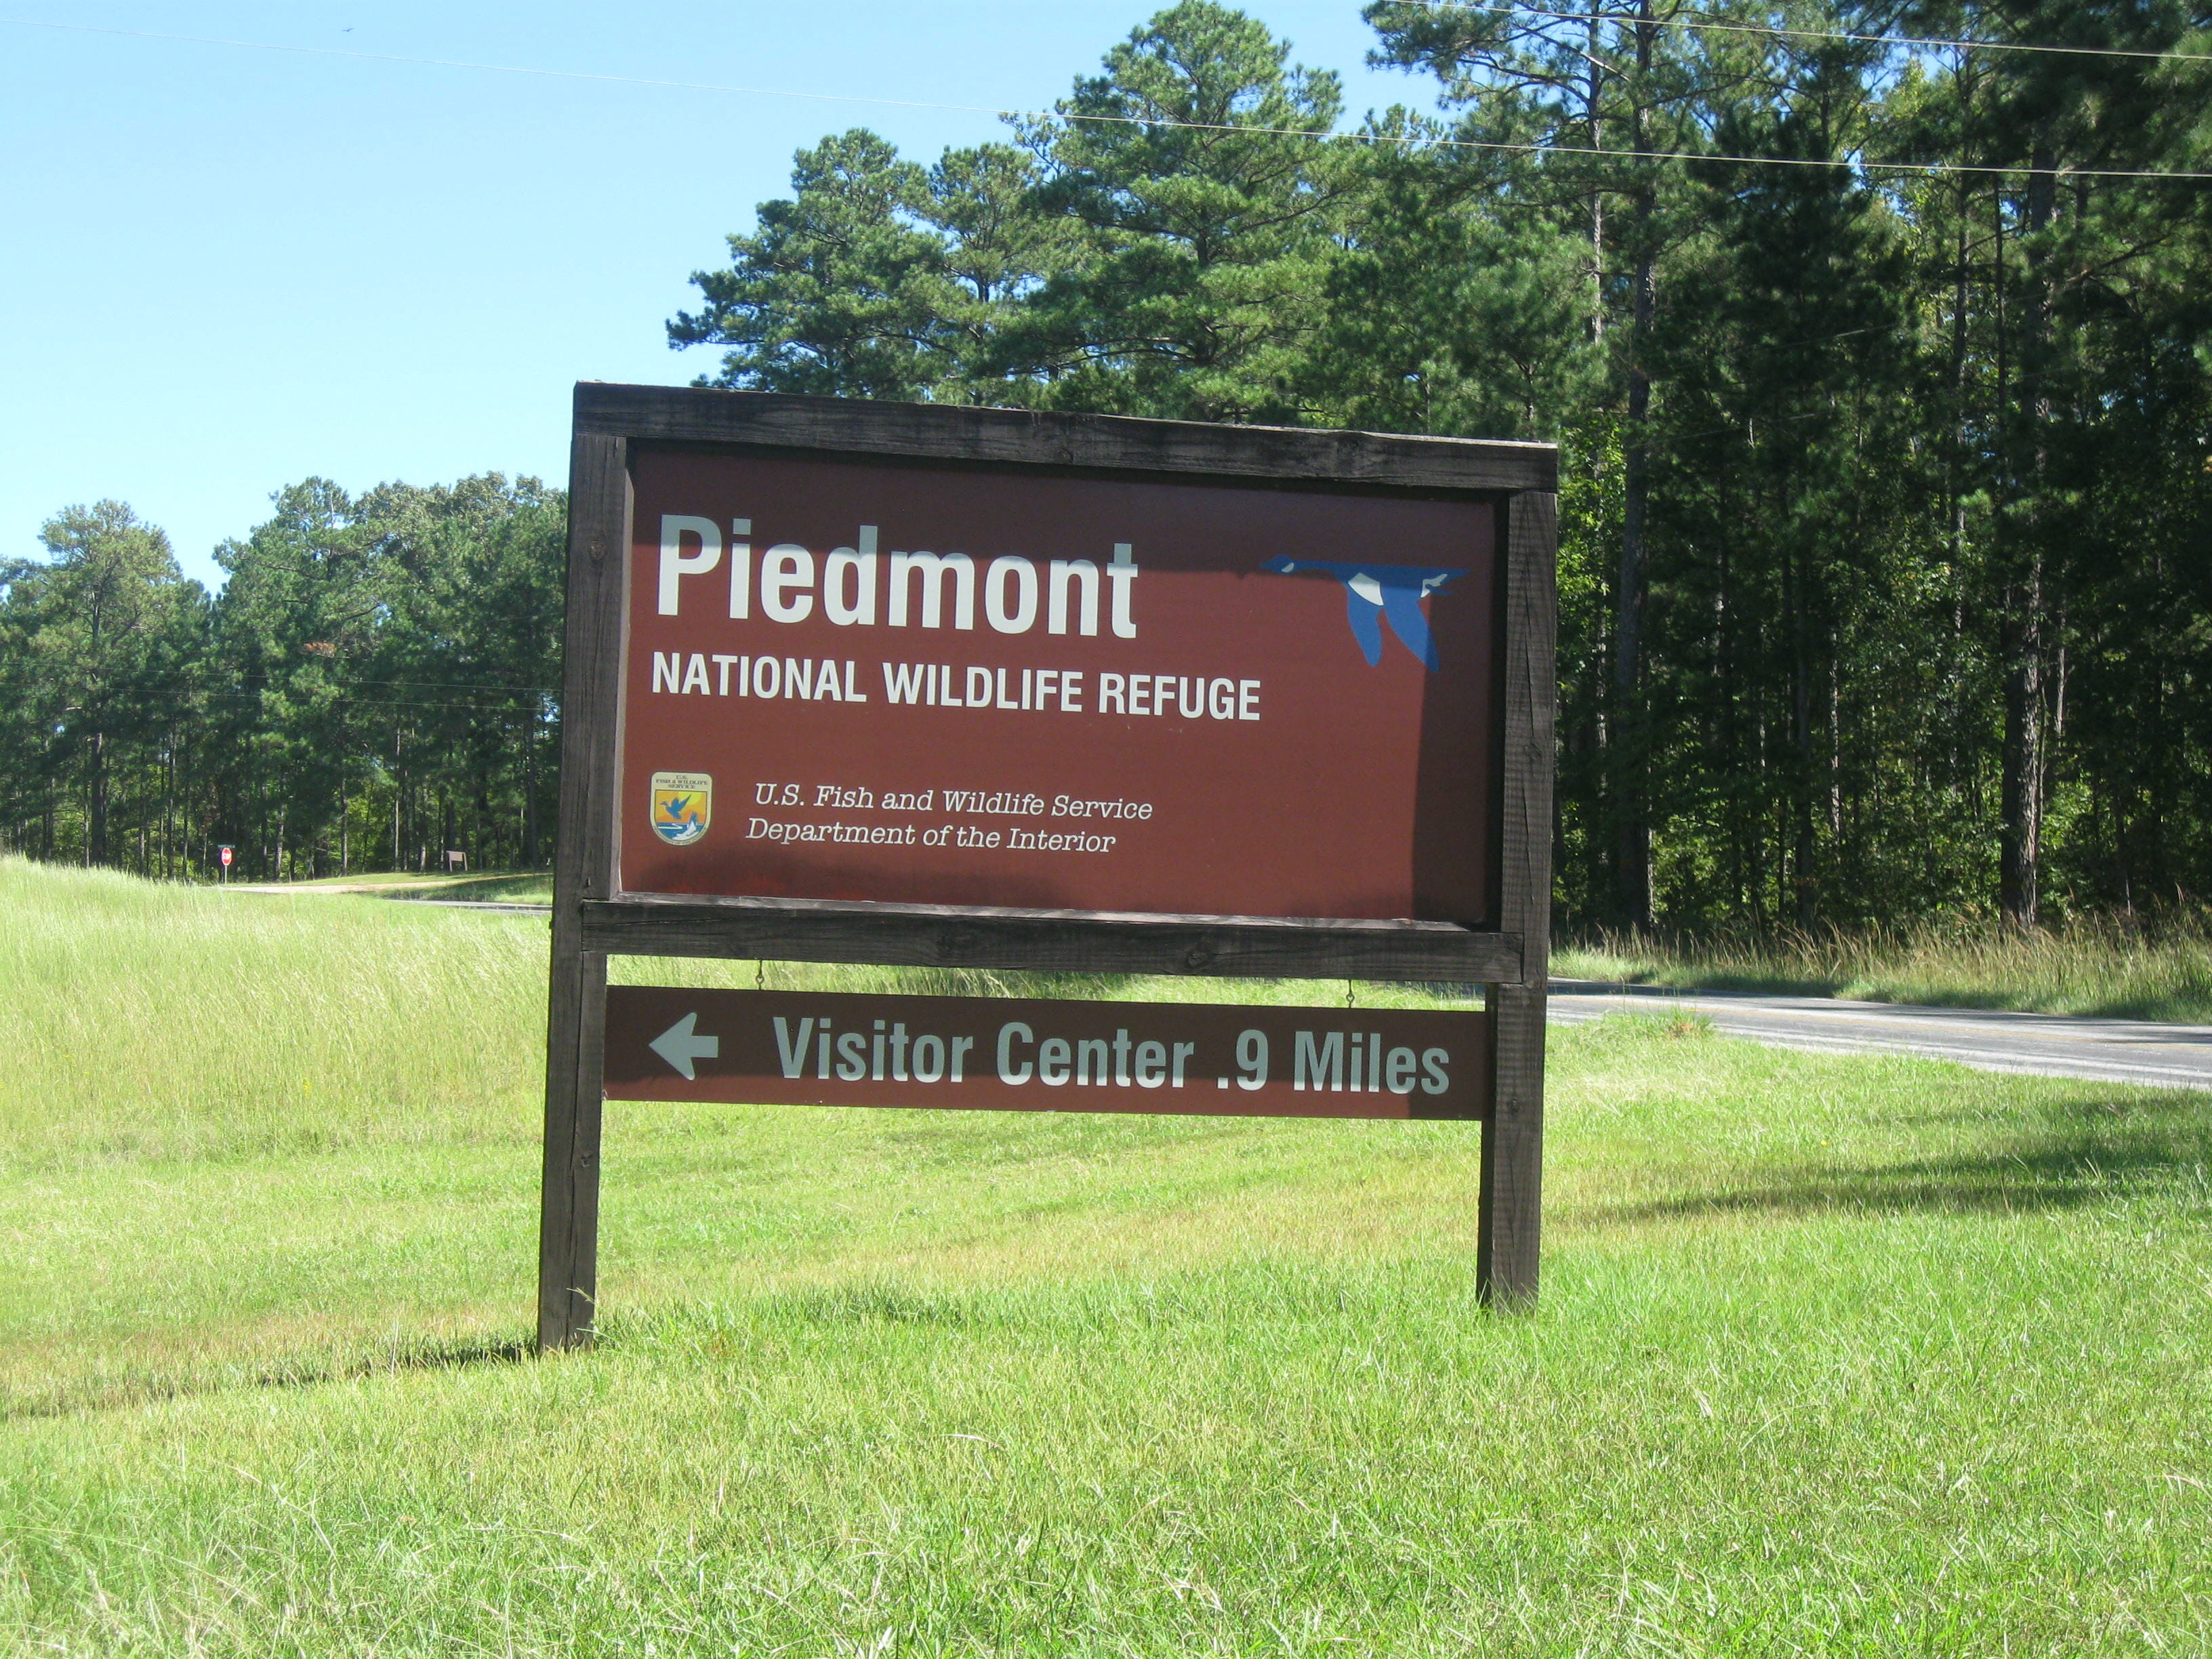 piedmont national wildlife refuge